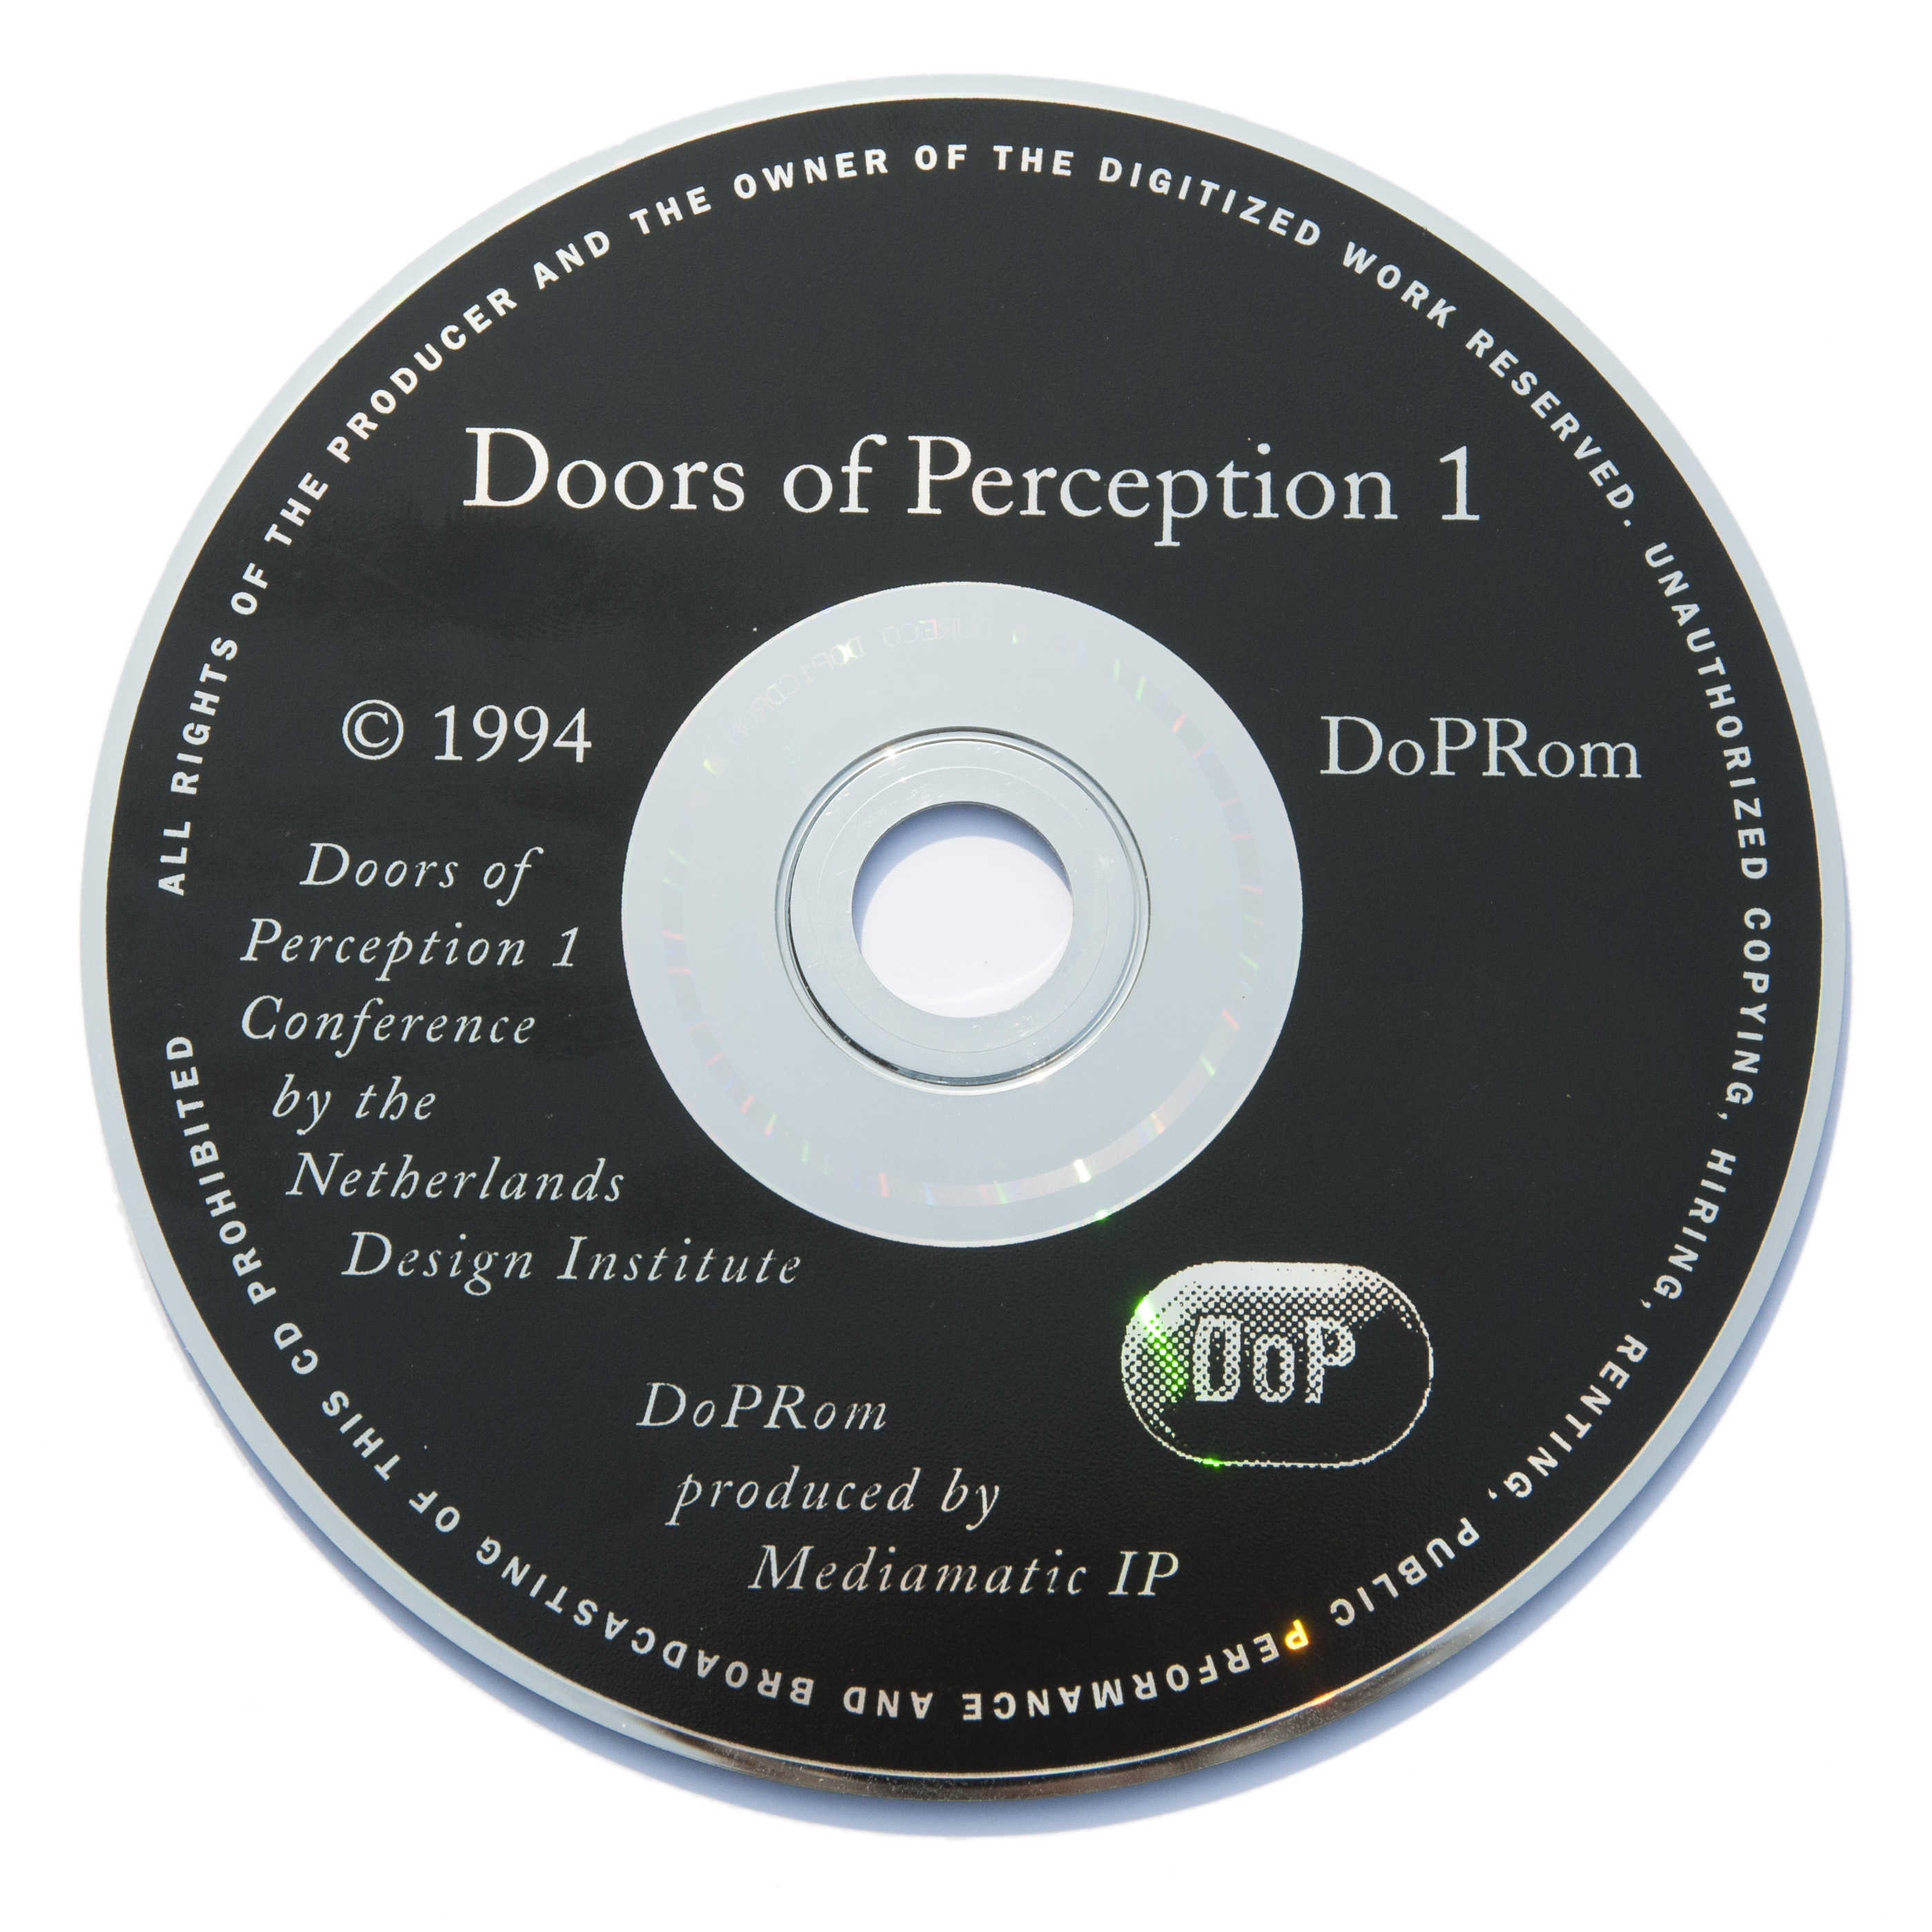 Cover of  Doors of Perception 1  cd-rom - Doors of Perception 1 Conference by the Netherlands Design Istitute. DoPRom produced by Mediamatic IP  sc 1 st  Mediamatic & Doors of Perception 1 - Mediamatic pezcame.com